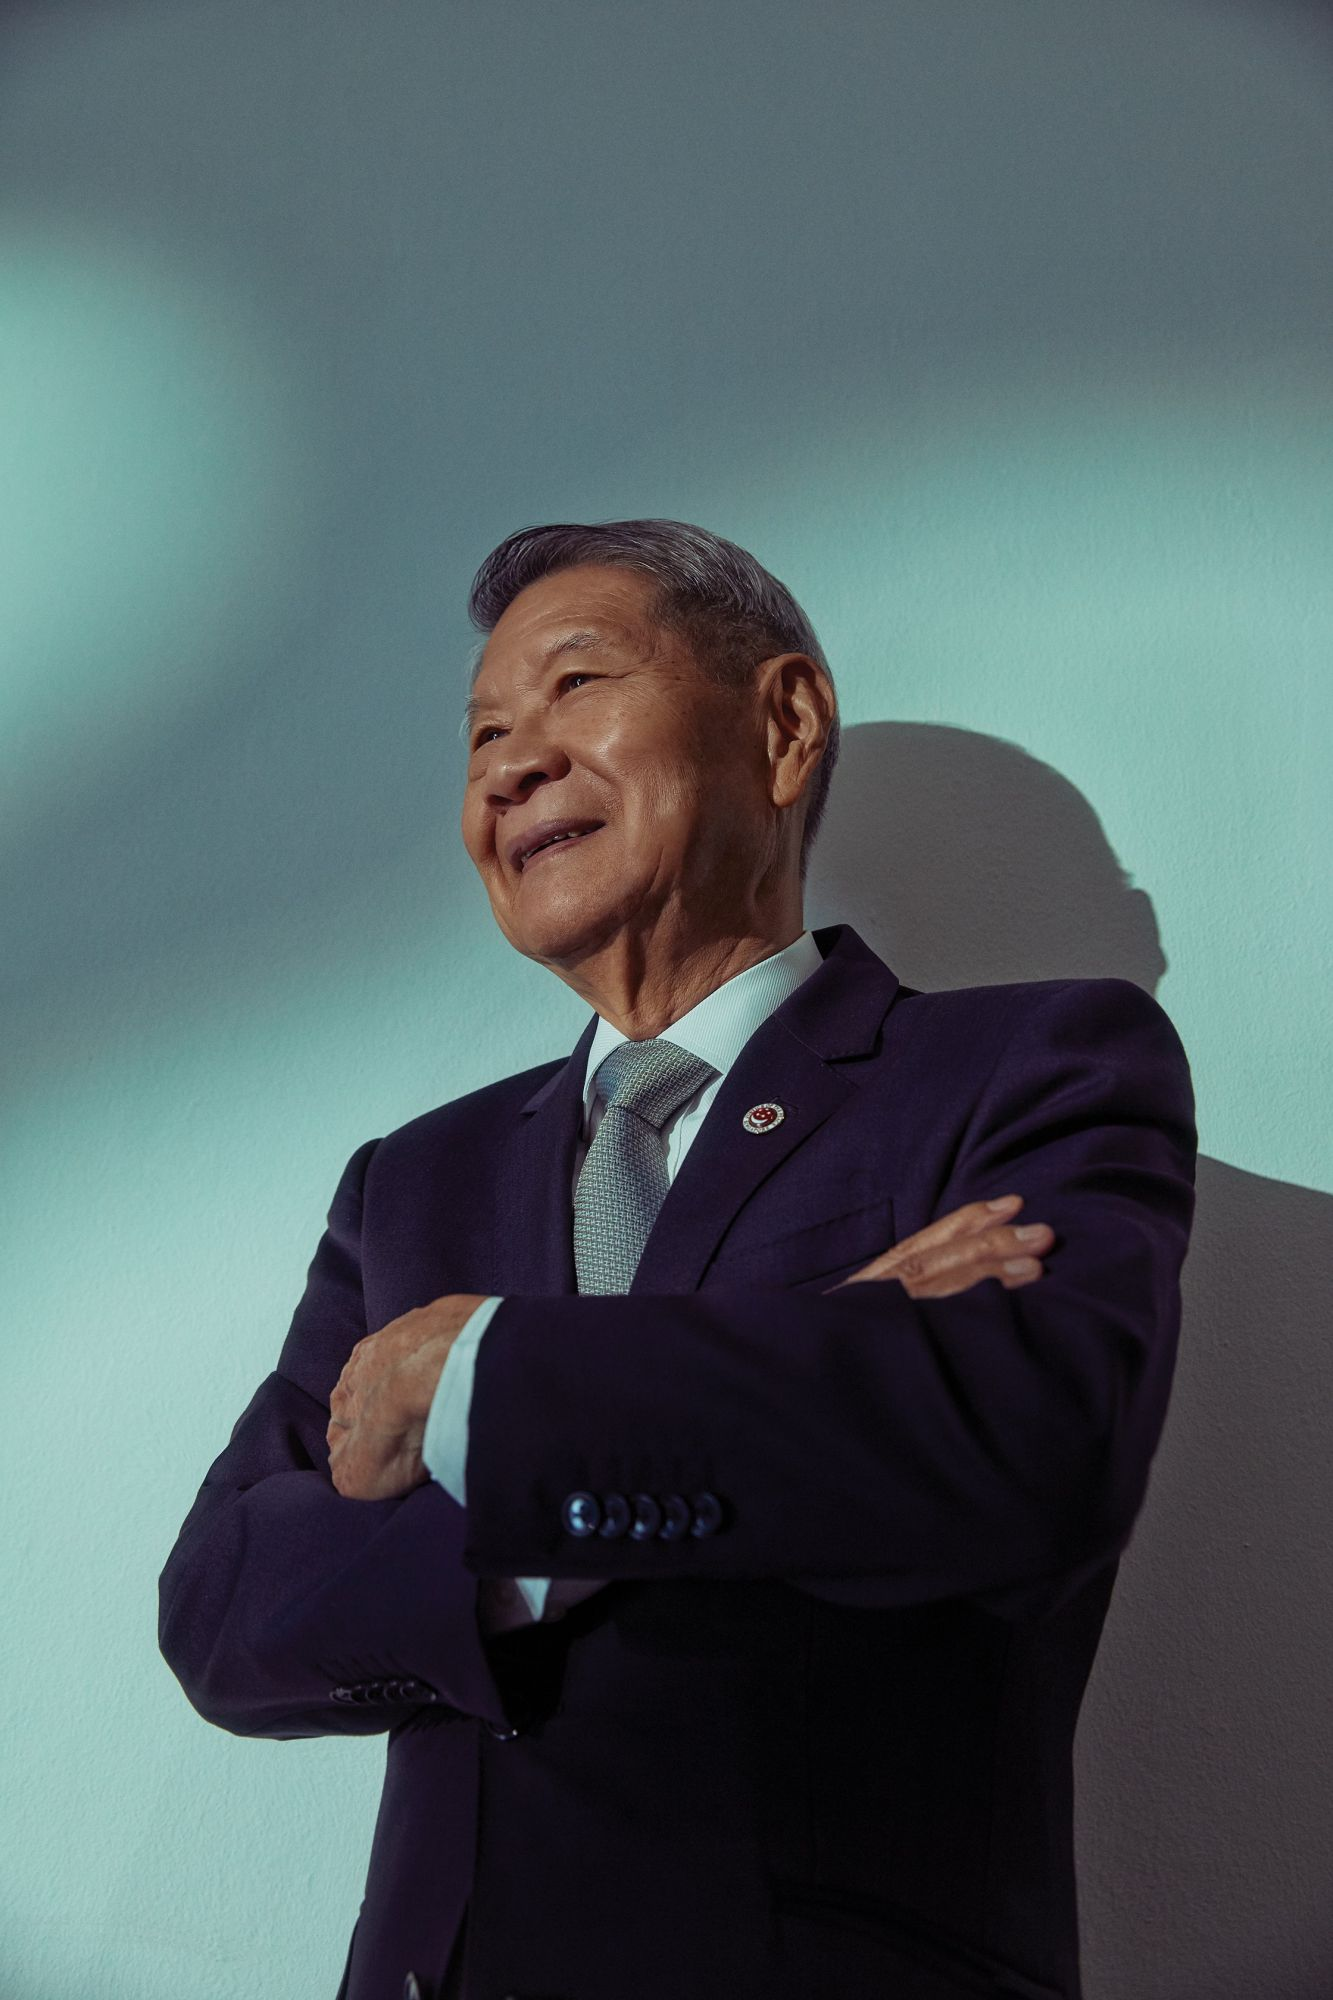 Asia's Most Influential: Koh Choon Hui, Chairman of Singapore Children's Society